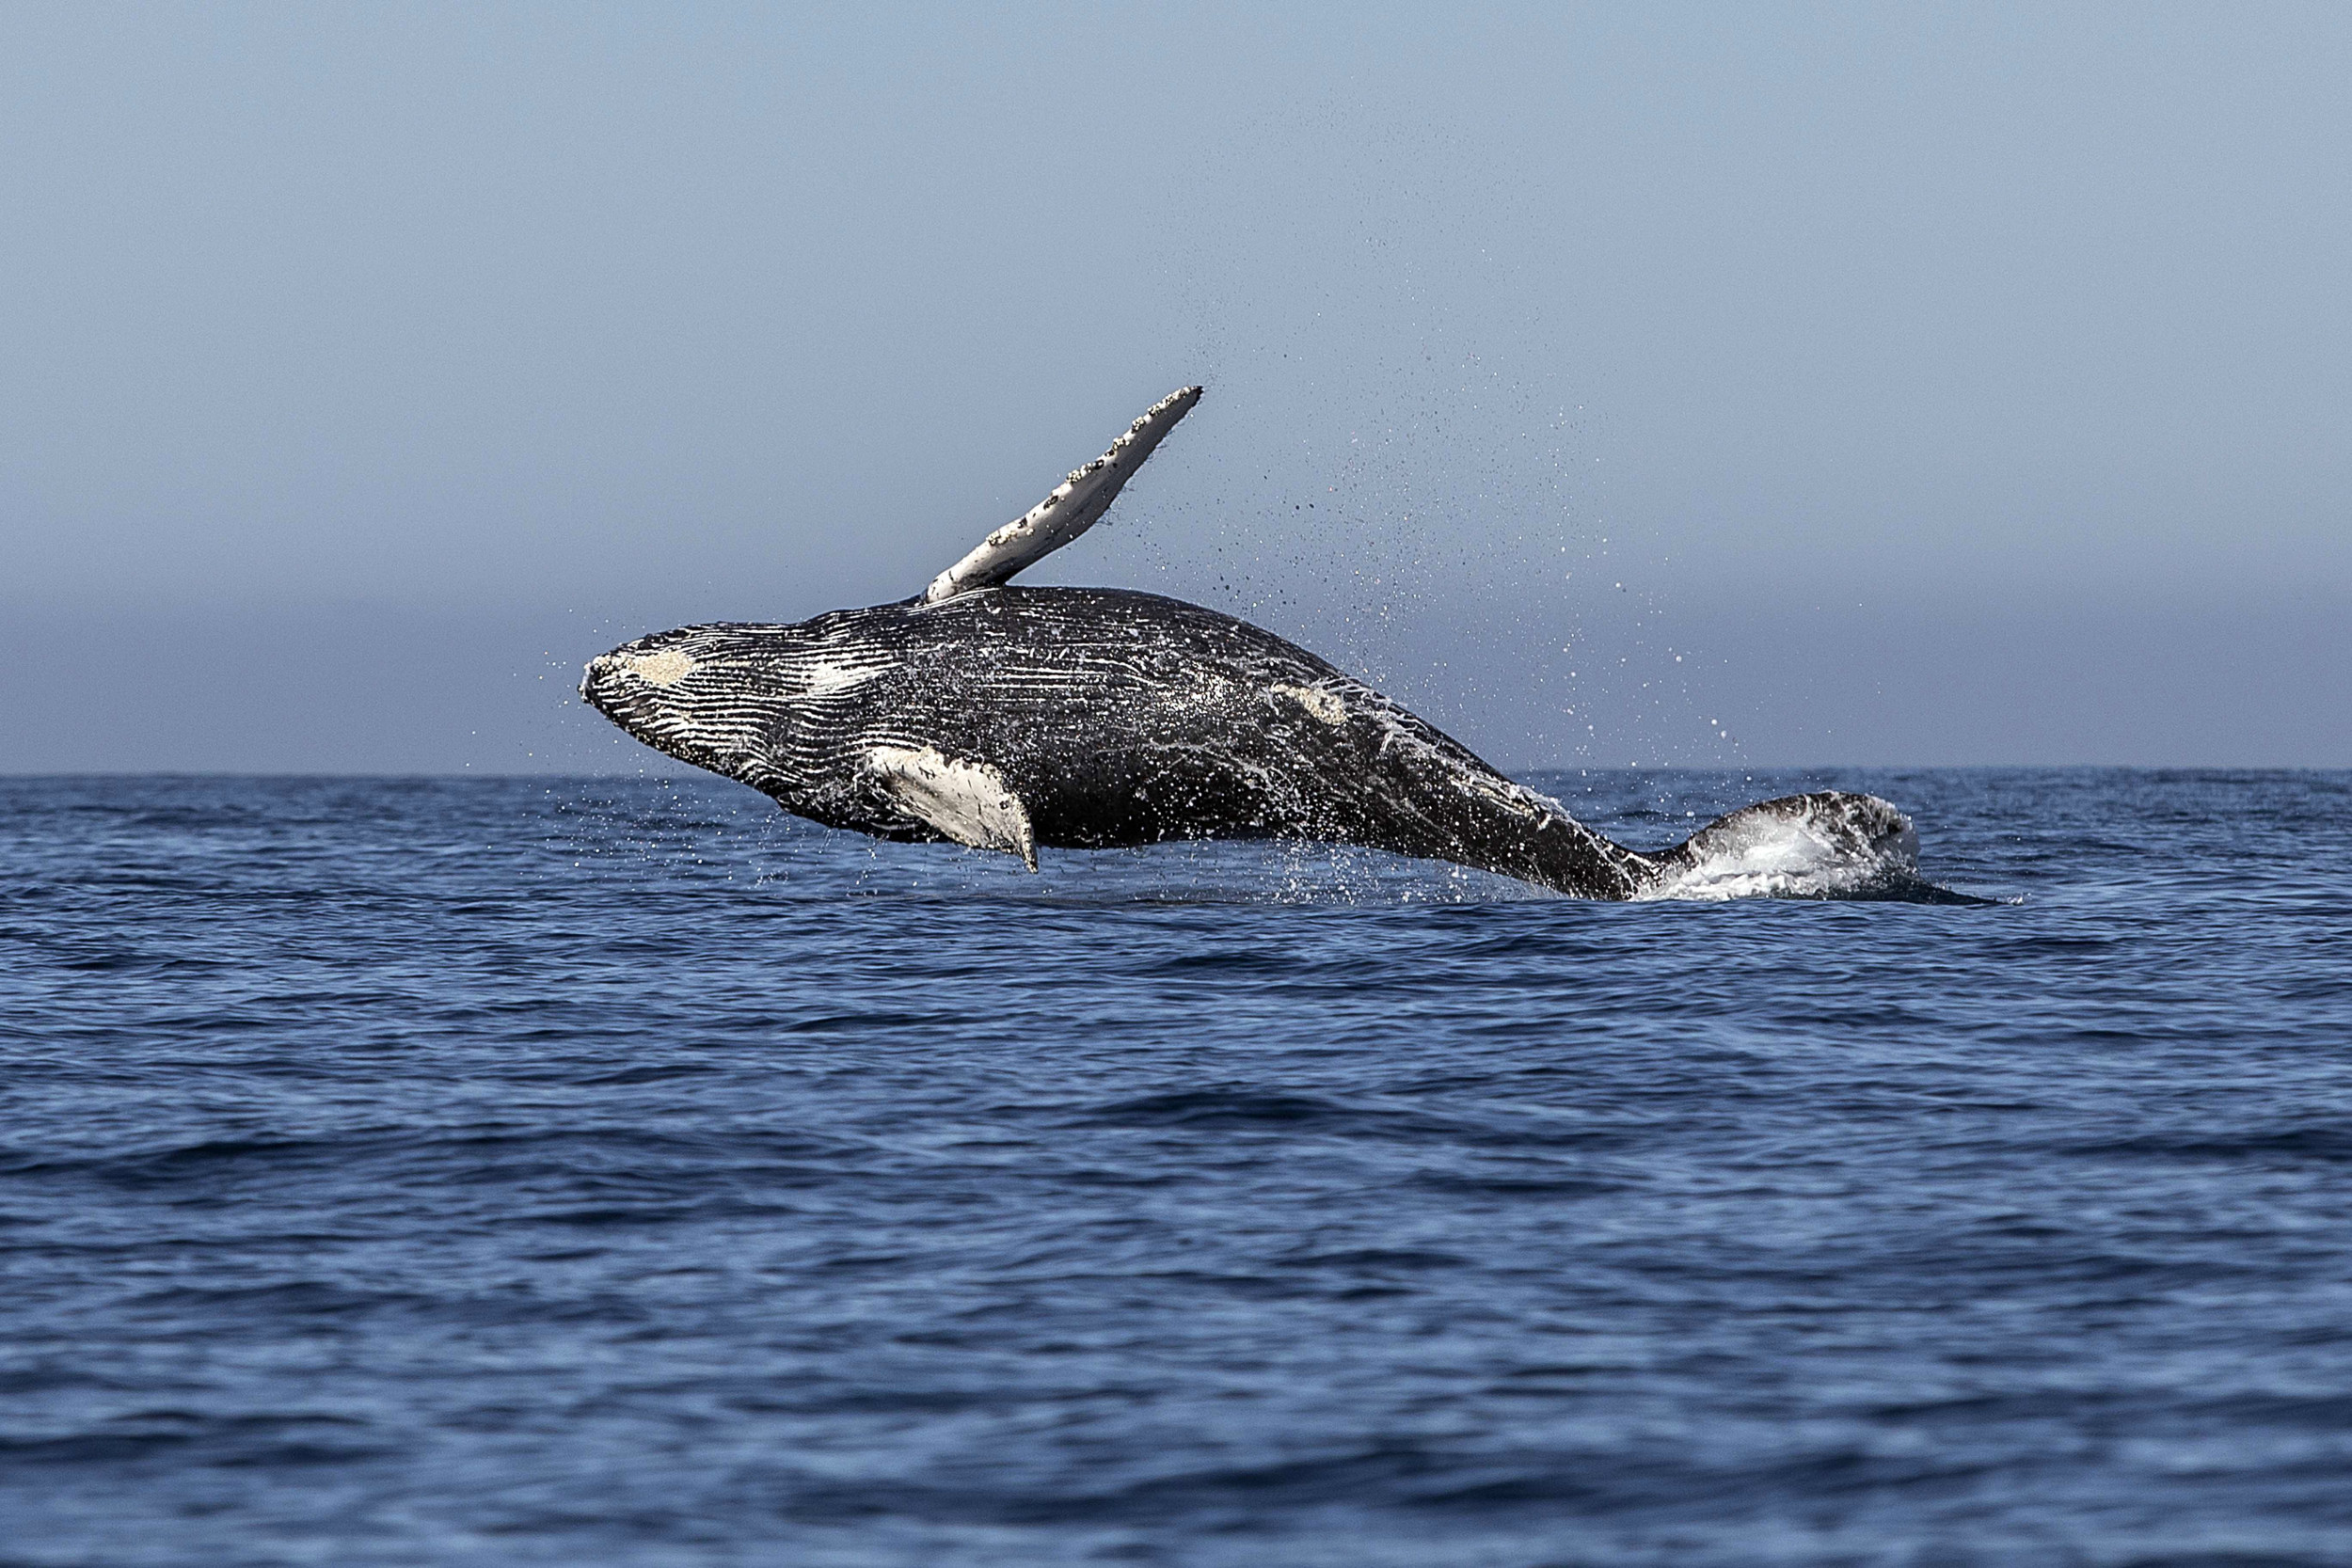 Whales rarely get cancer because of how they evolved, research suggests